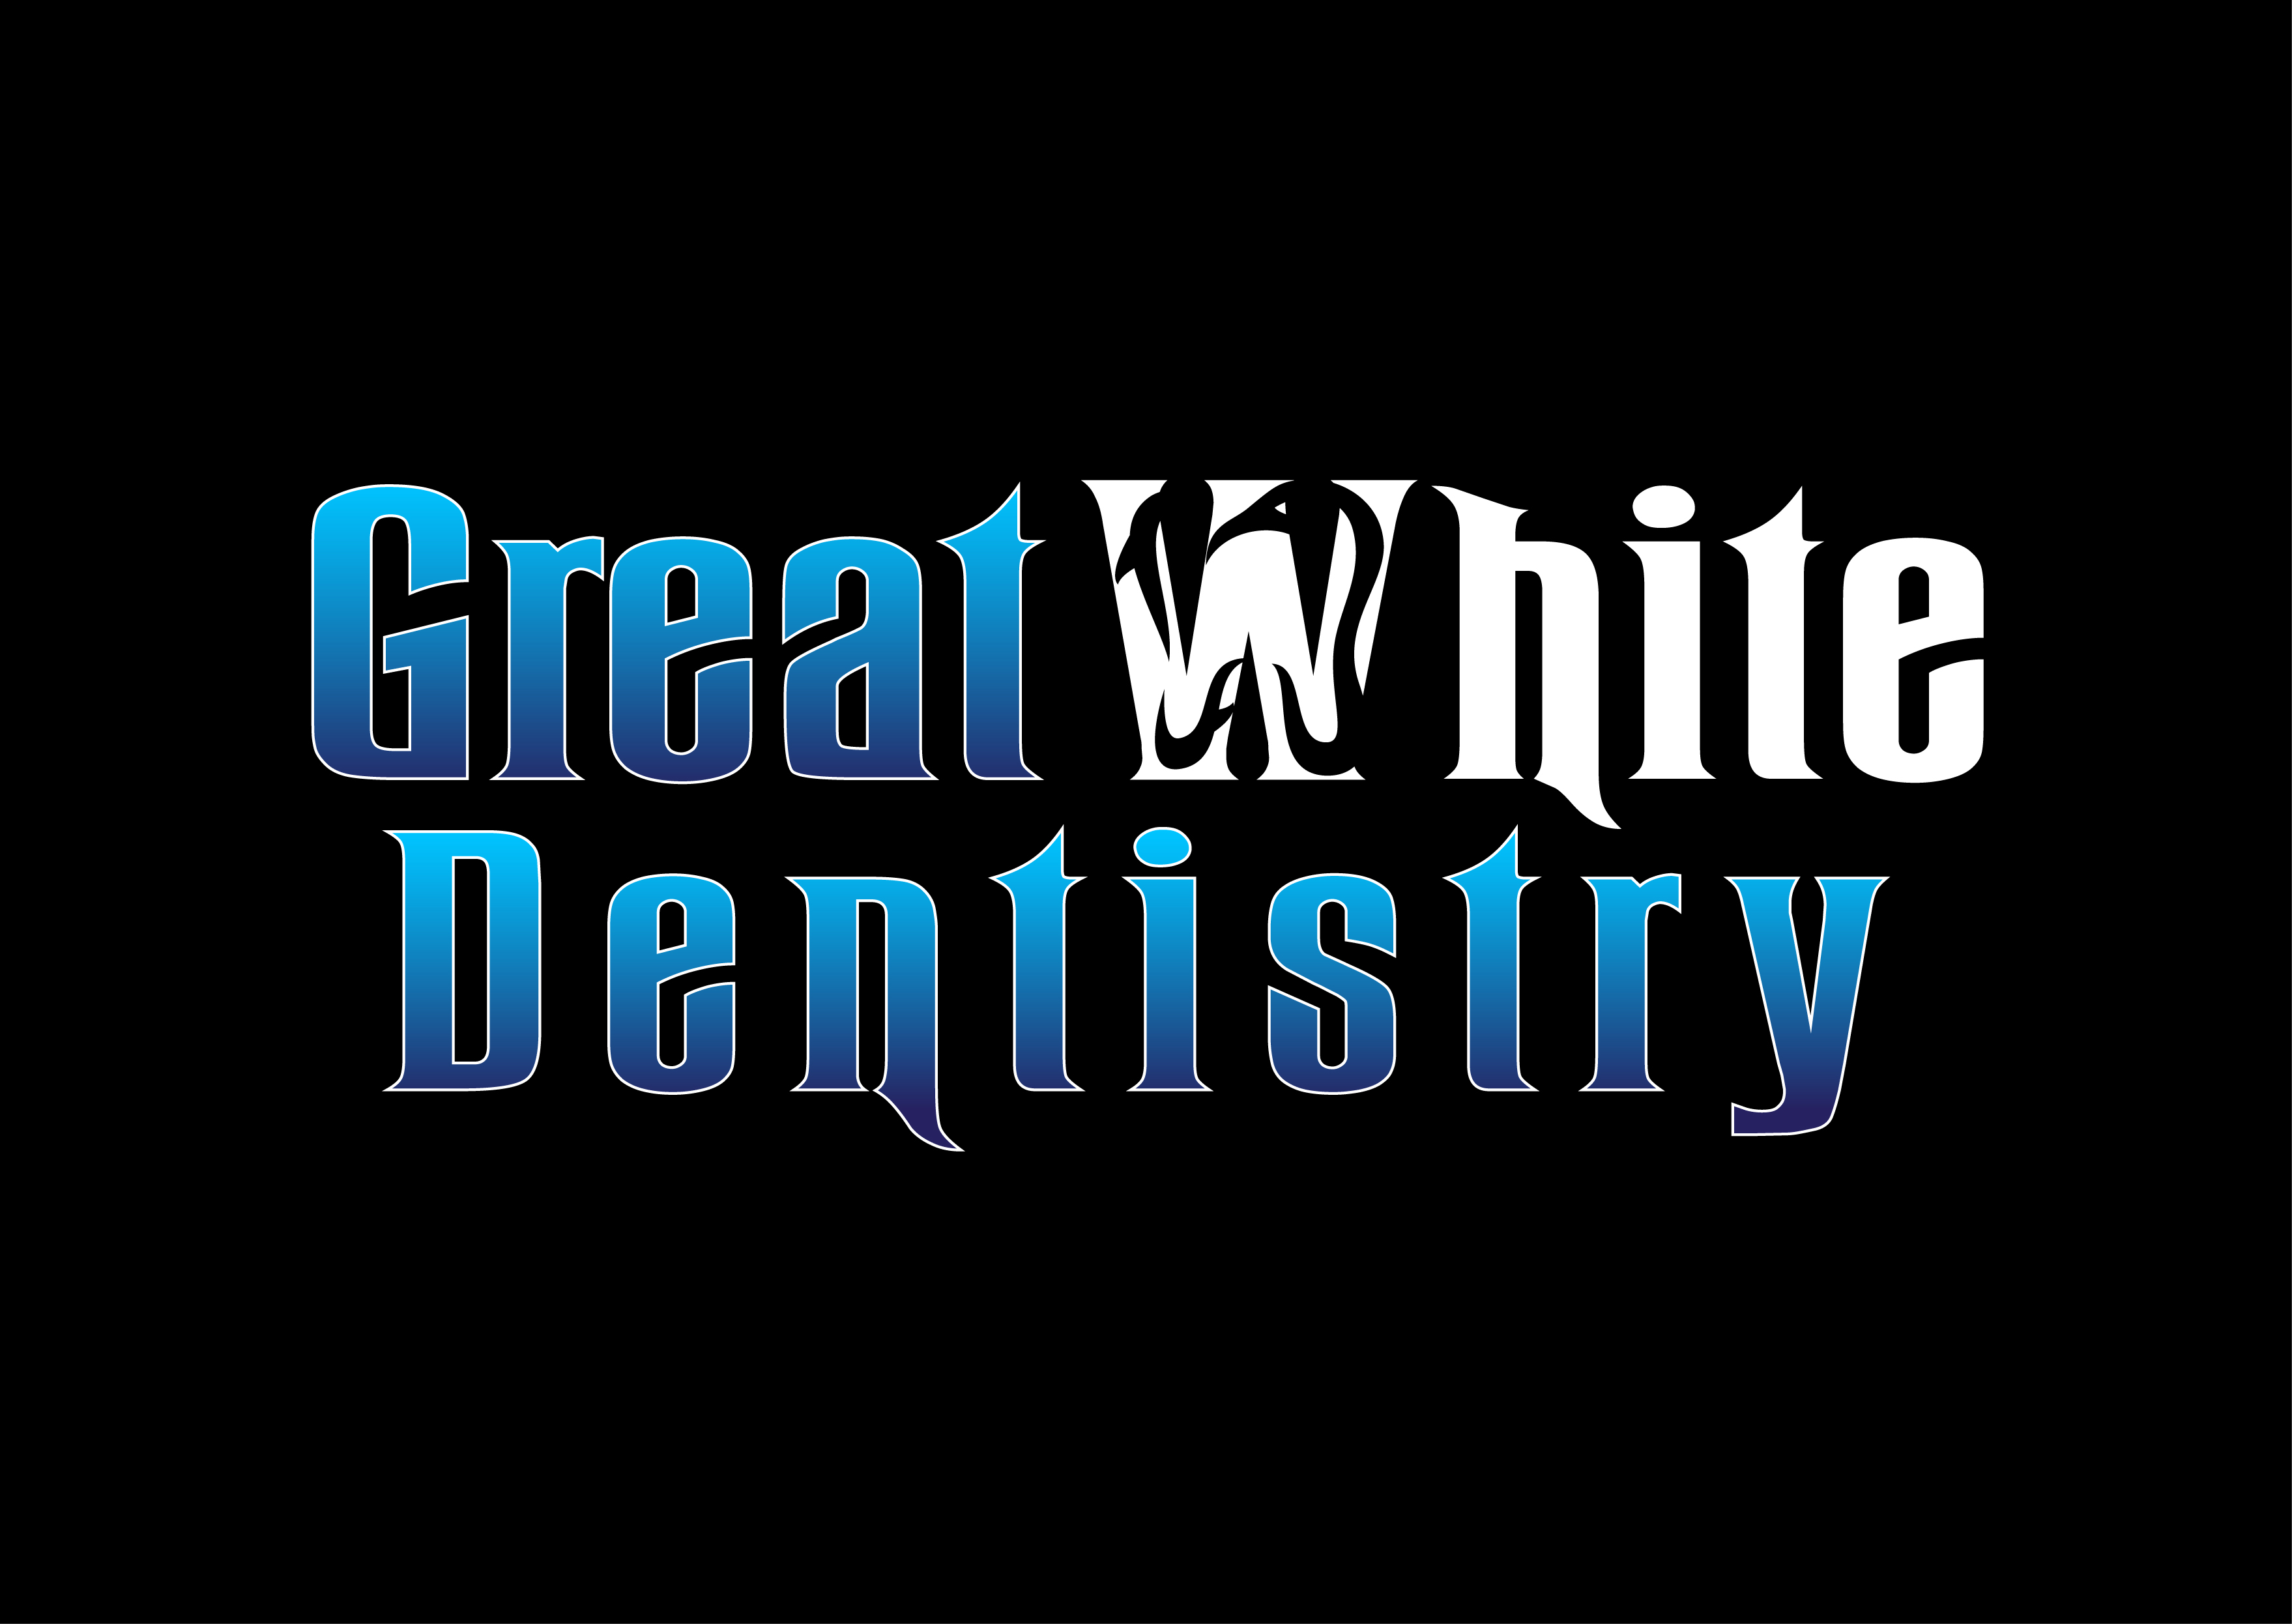 Logo Design by 3draw - Entry No. 137 in the Logo Design Contest Logo Design for Great White Dentistry.